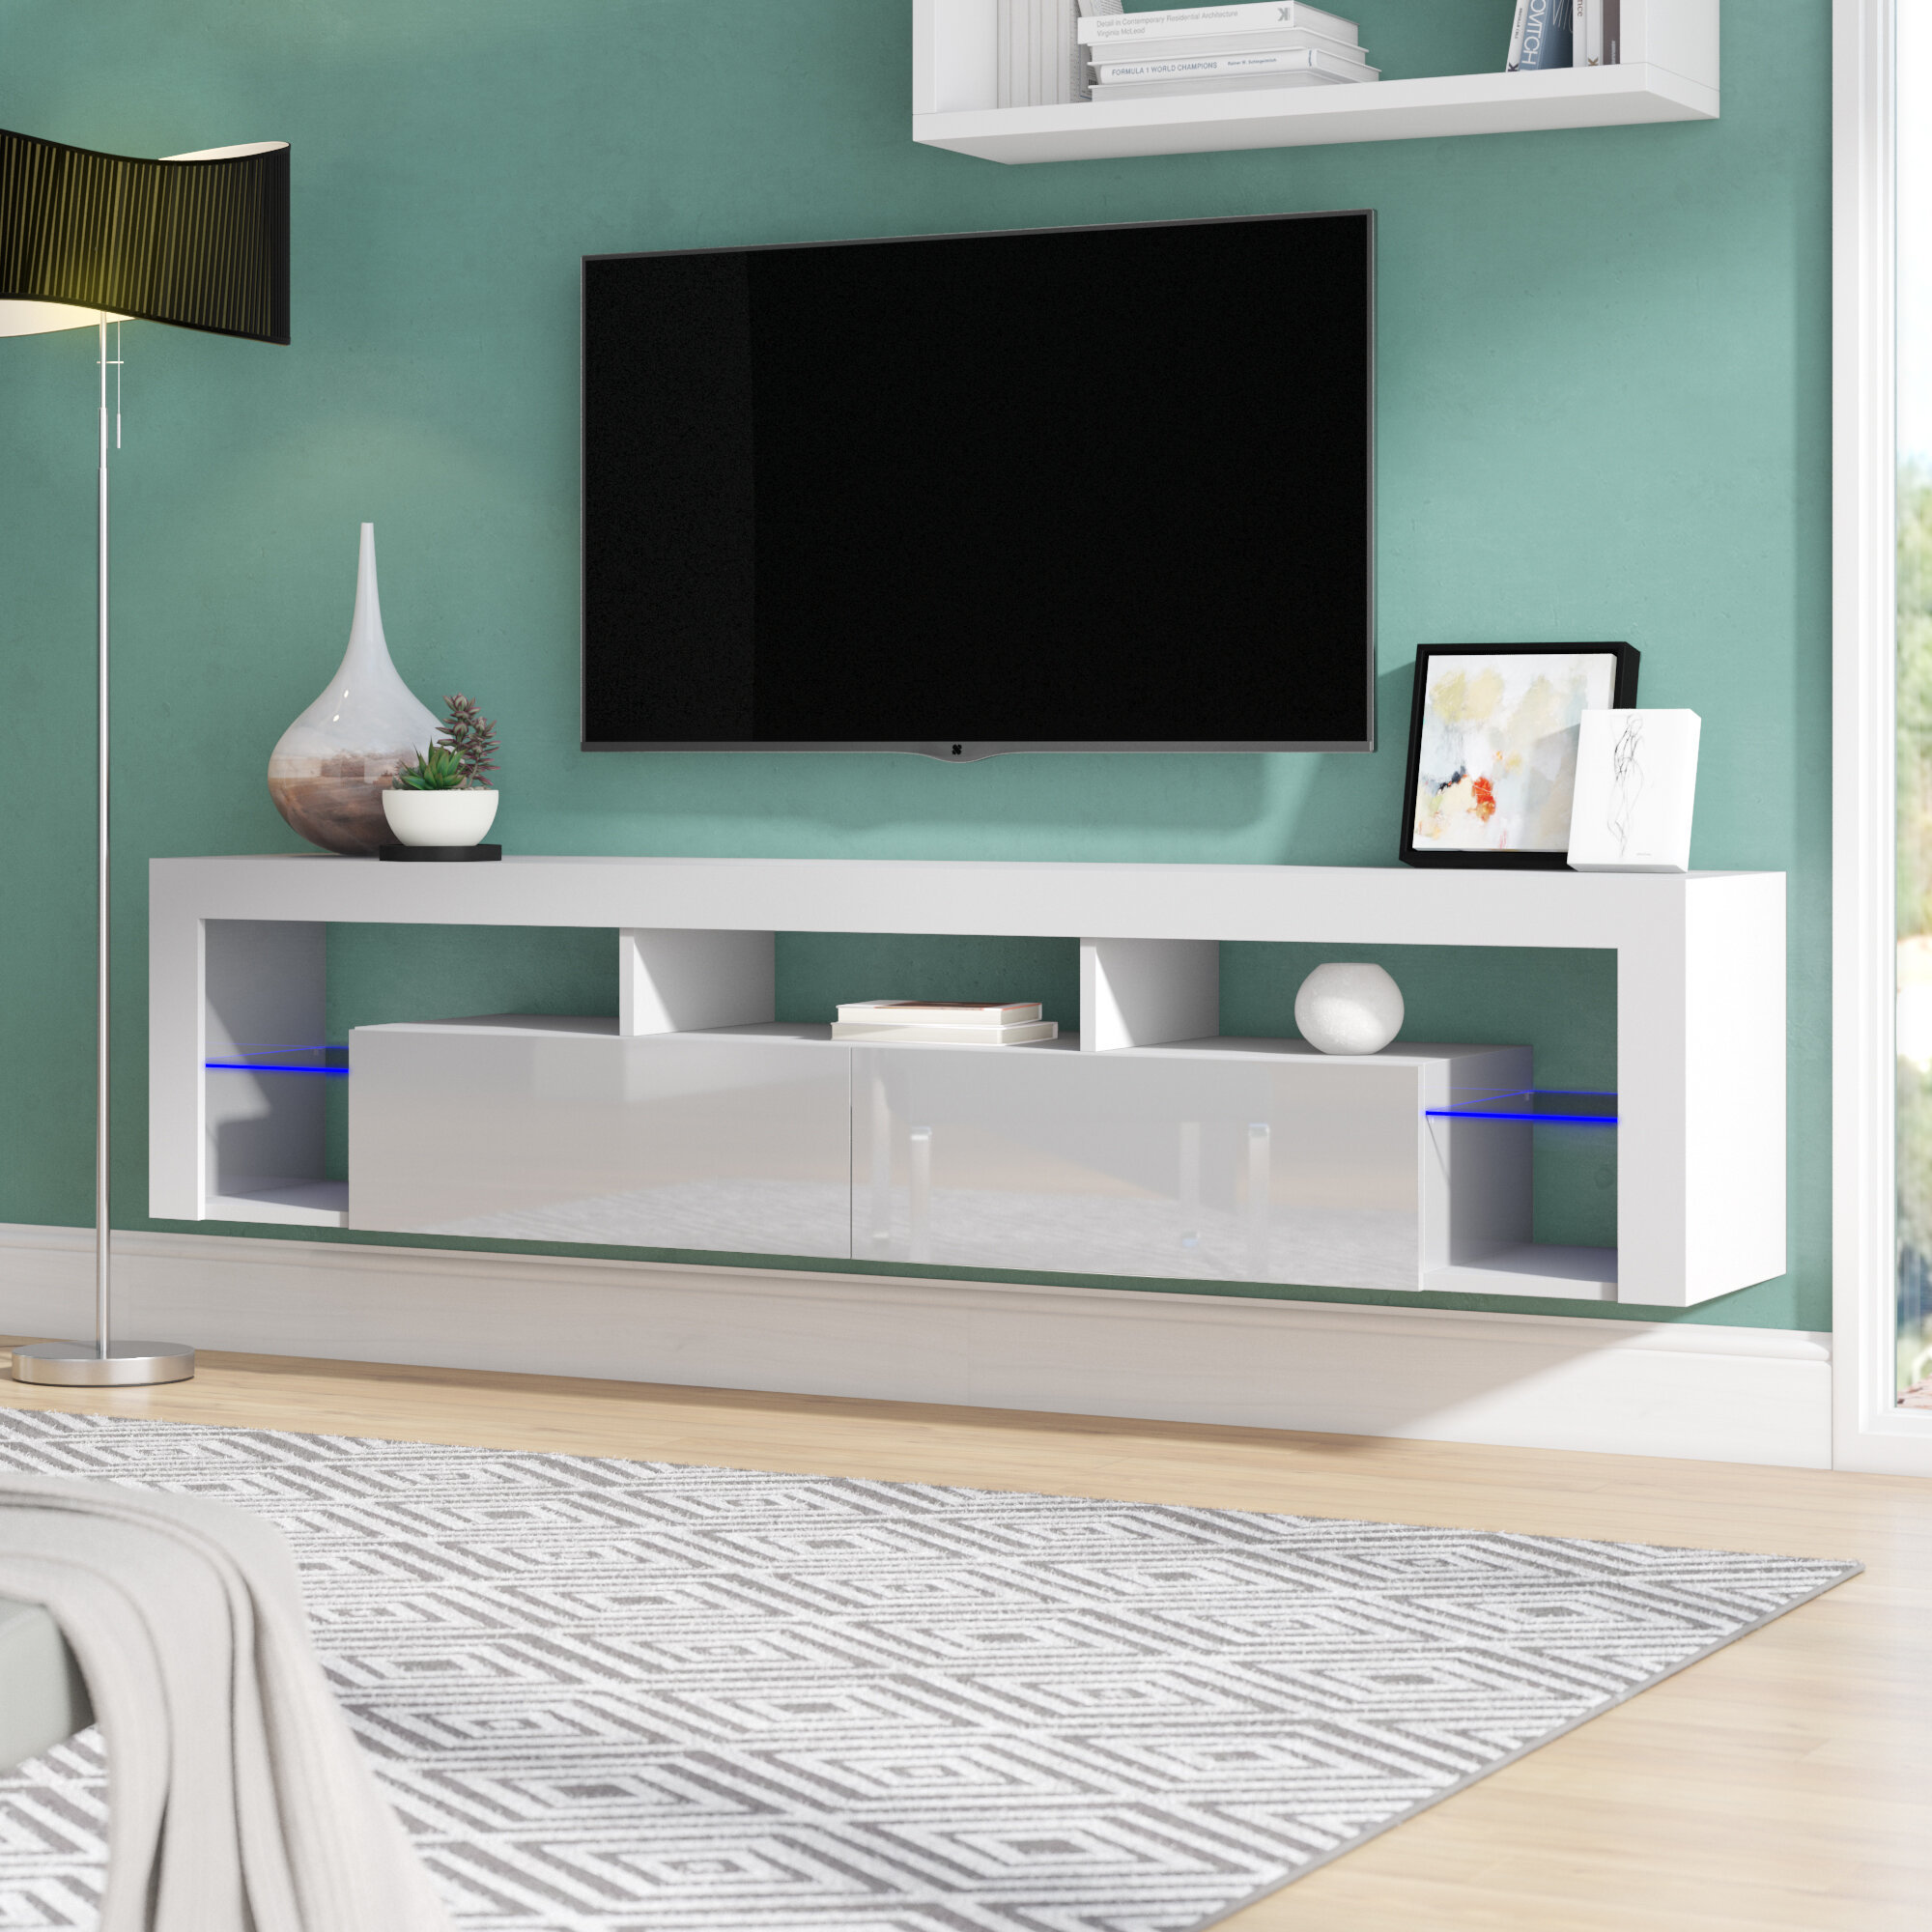 Swell Orren Ellis Floating Milano Bottcher Tv Stand For Tvs Up To Download Free Architecture Designs Scobabritishbridgeorg